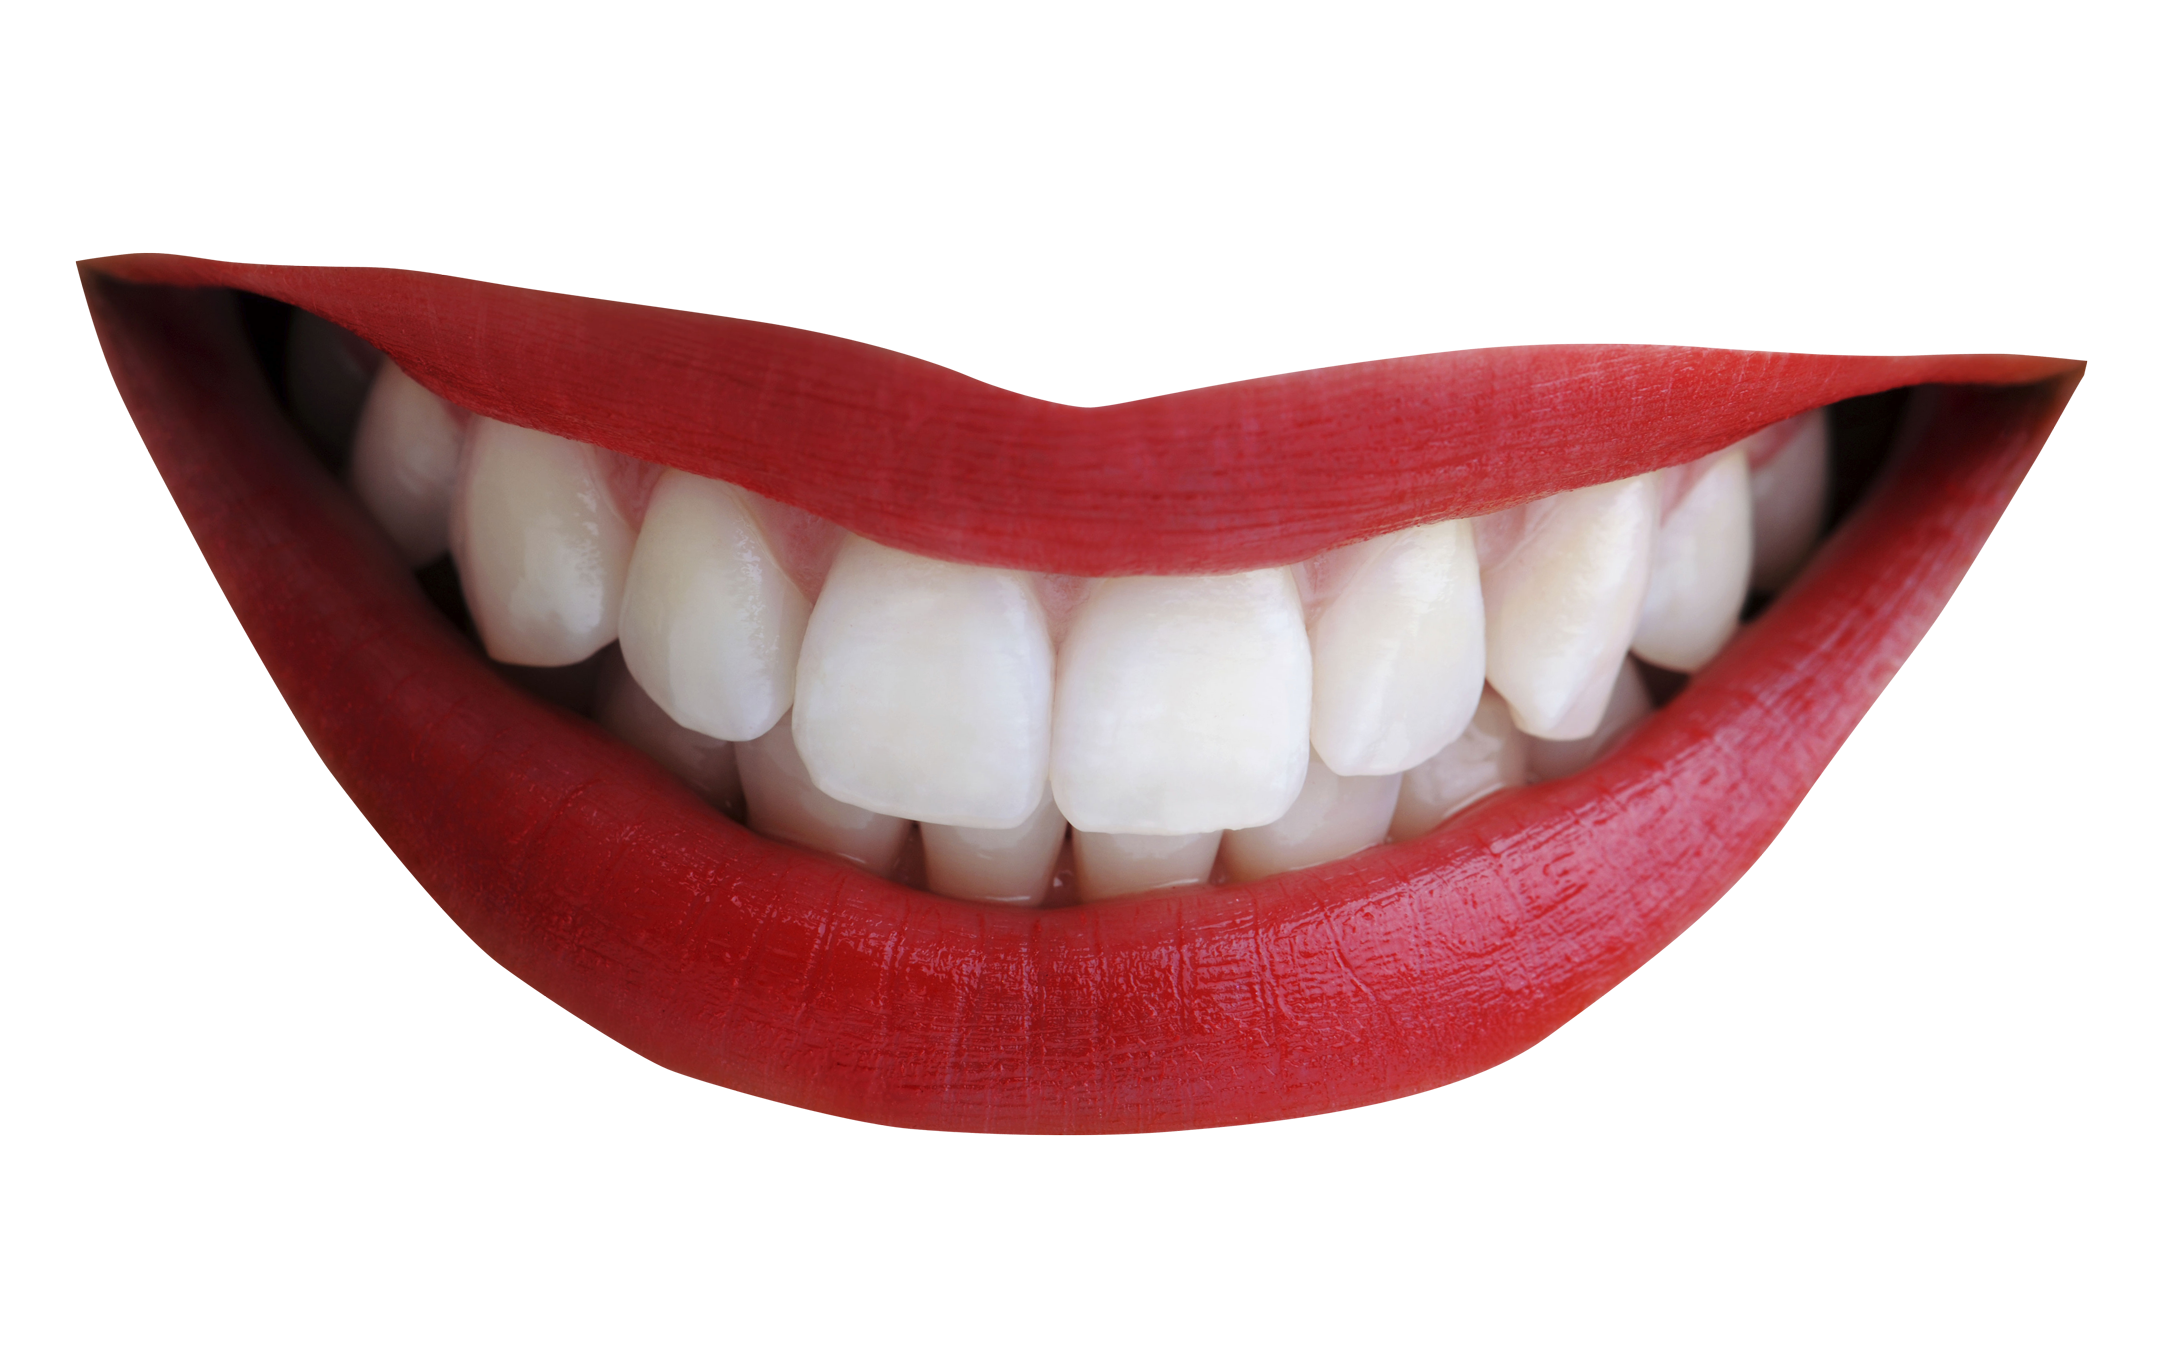 Teeth Mouth PNG Photo image #46533